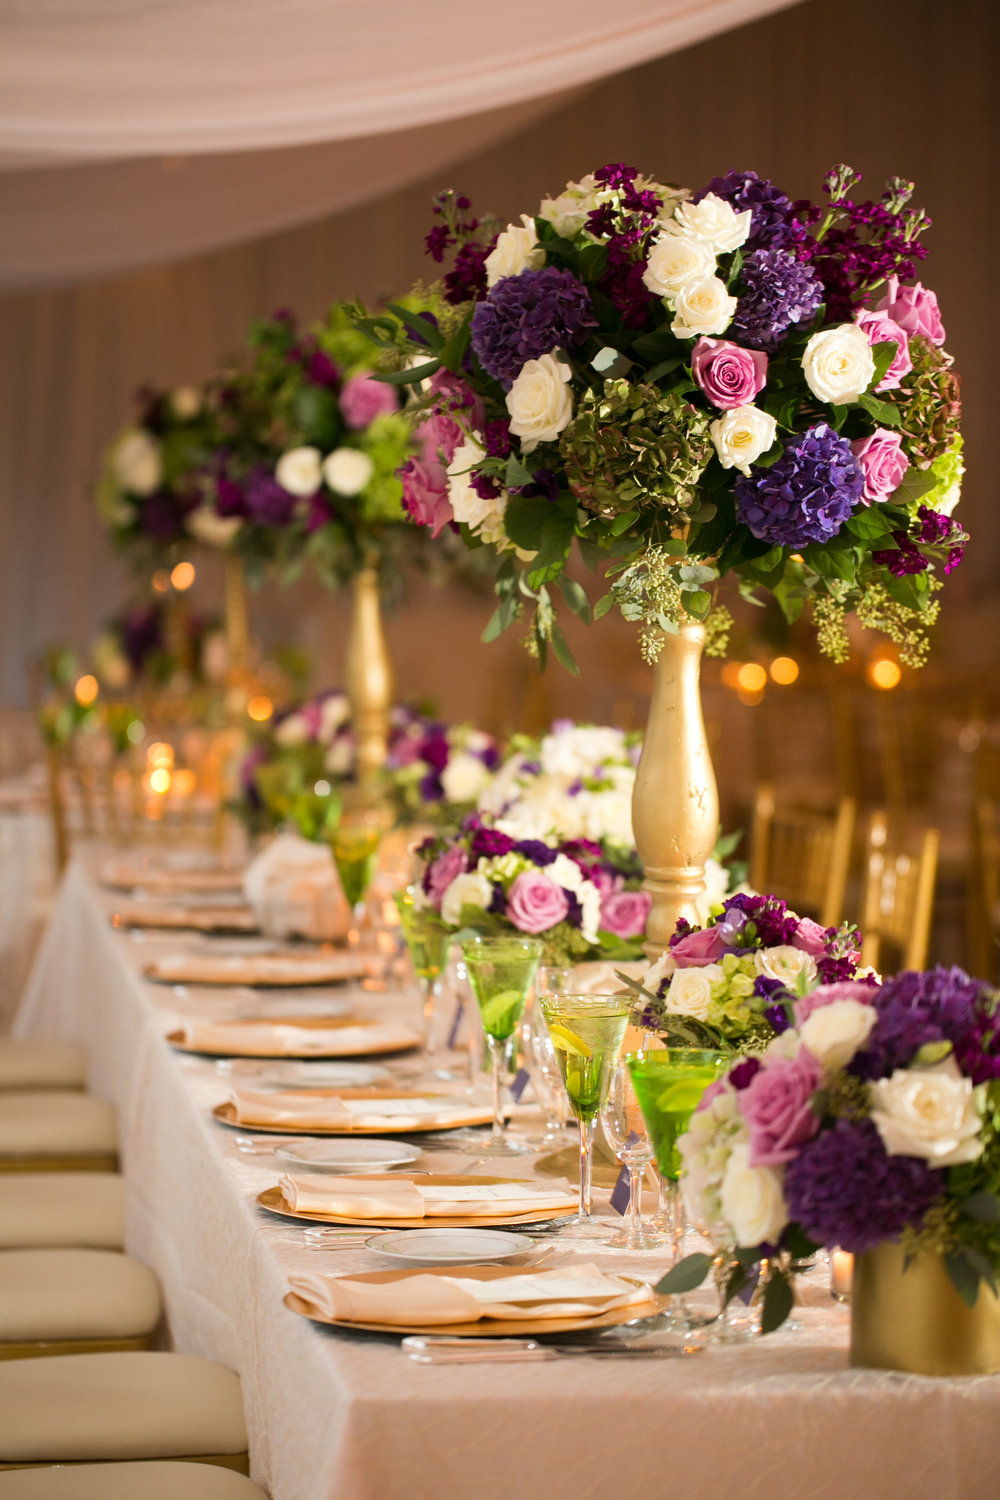 The head-table was TO-DIE-FOR!  A mix of high and low with the bridesmaids bouquets added in to make a luxurious and flower-rich look.